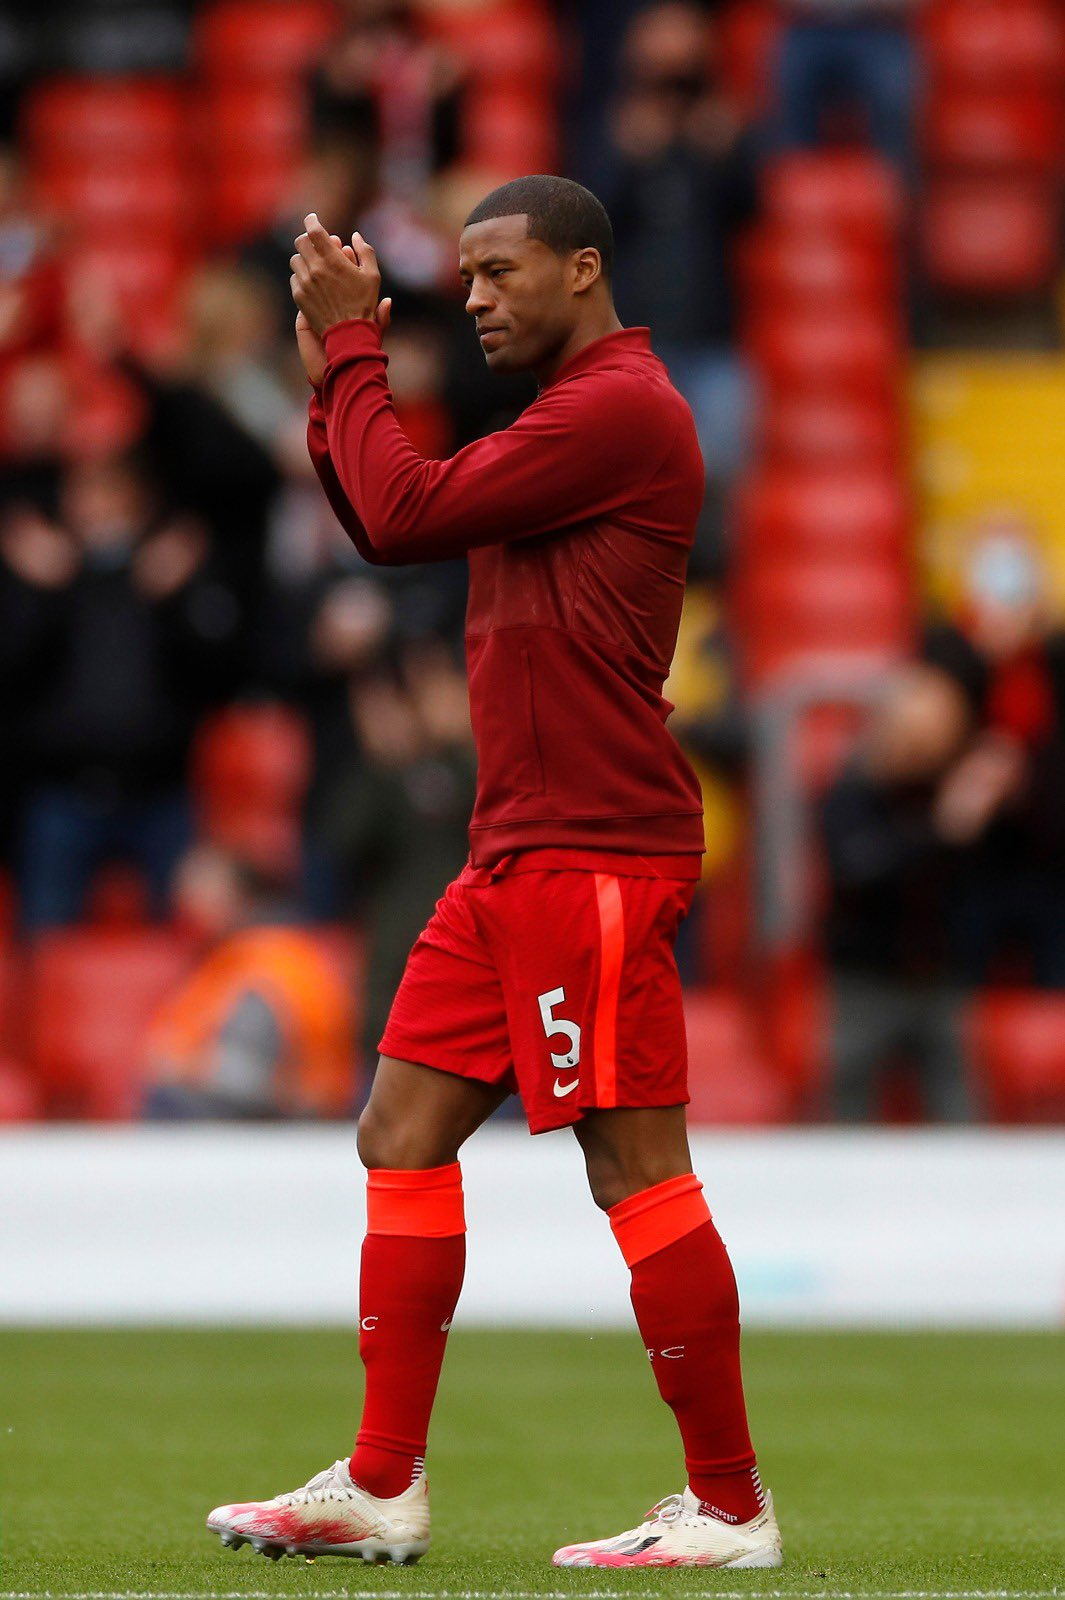 Gini Wijnaldum has reached a verbal agreement with Barcelona over a contract until June 2024